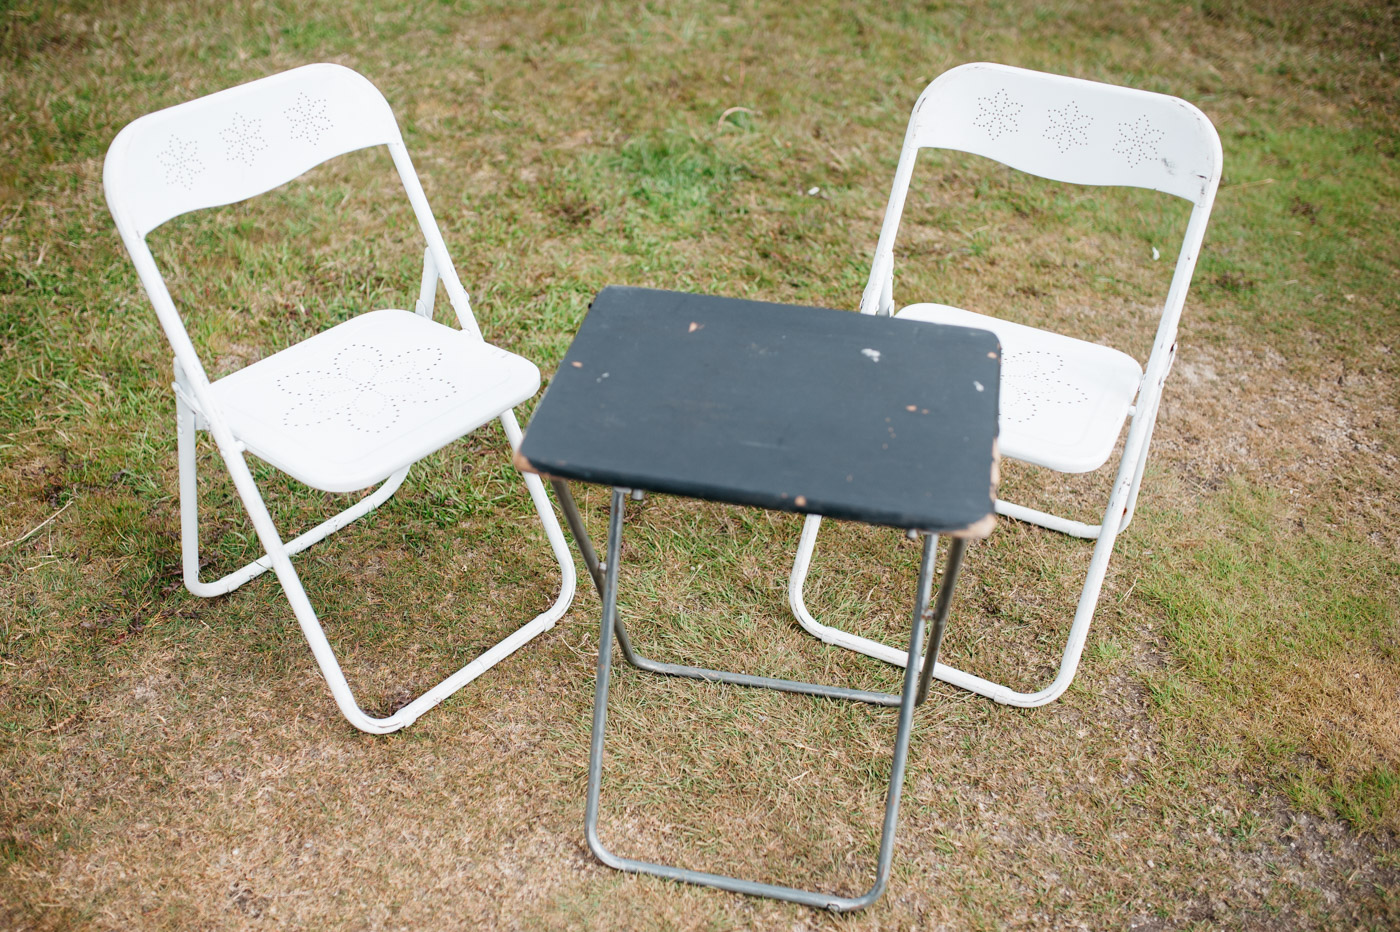 Wicked SouthAmerica Campervan Review-Folding chairs and table